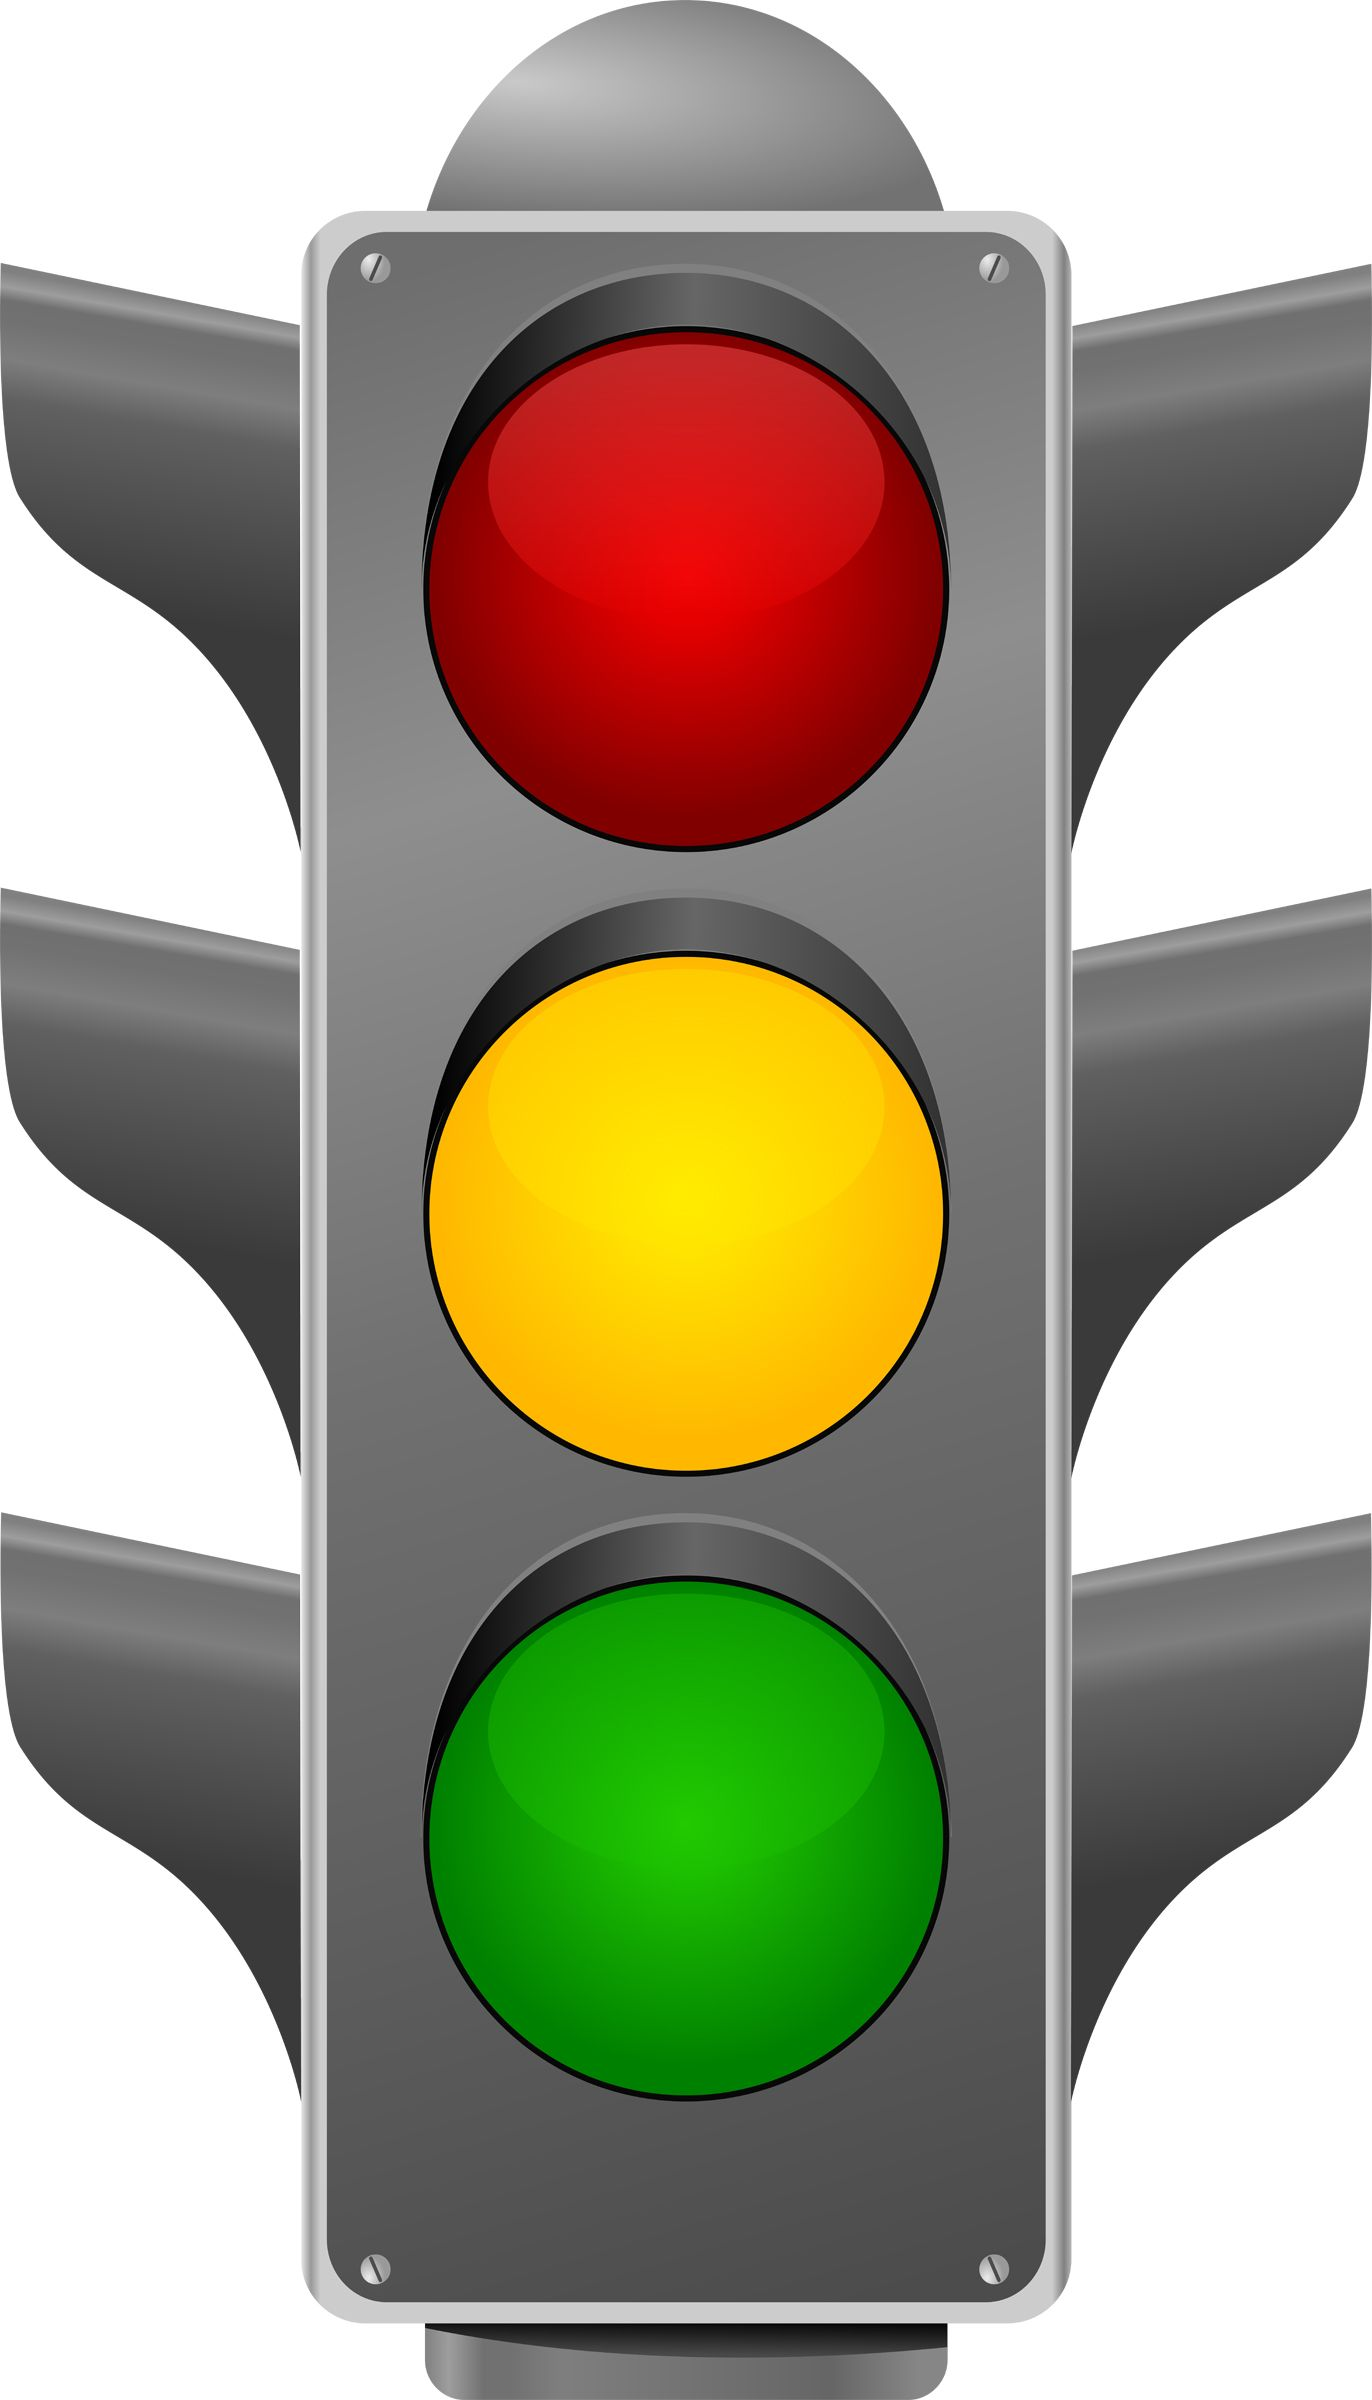 Singnaling clipart picture free download printable traffic light | Use these free images for your ... picture free download